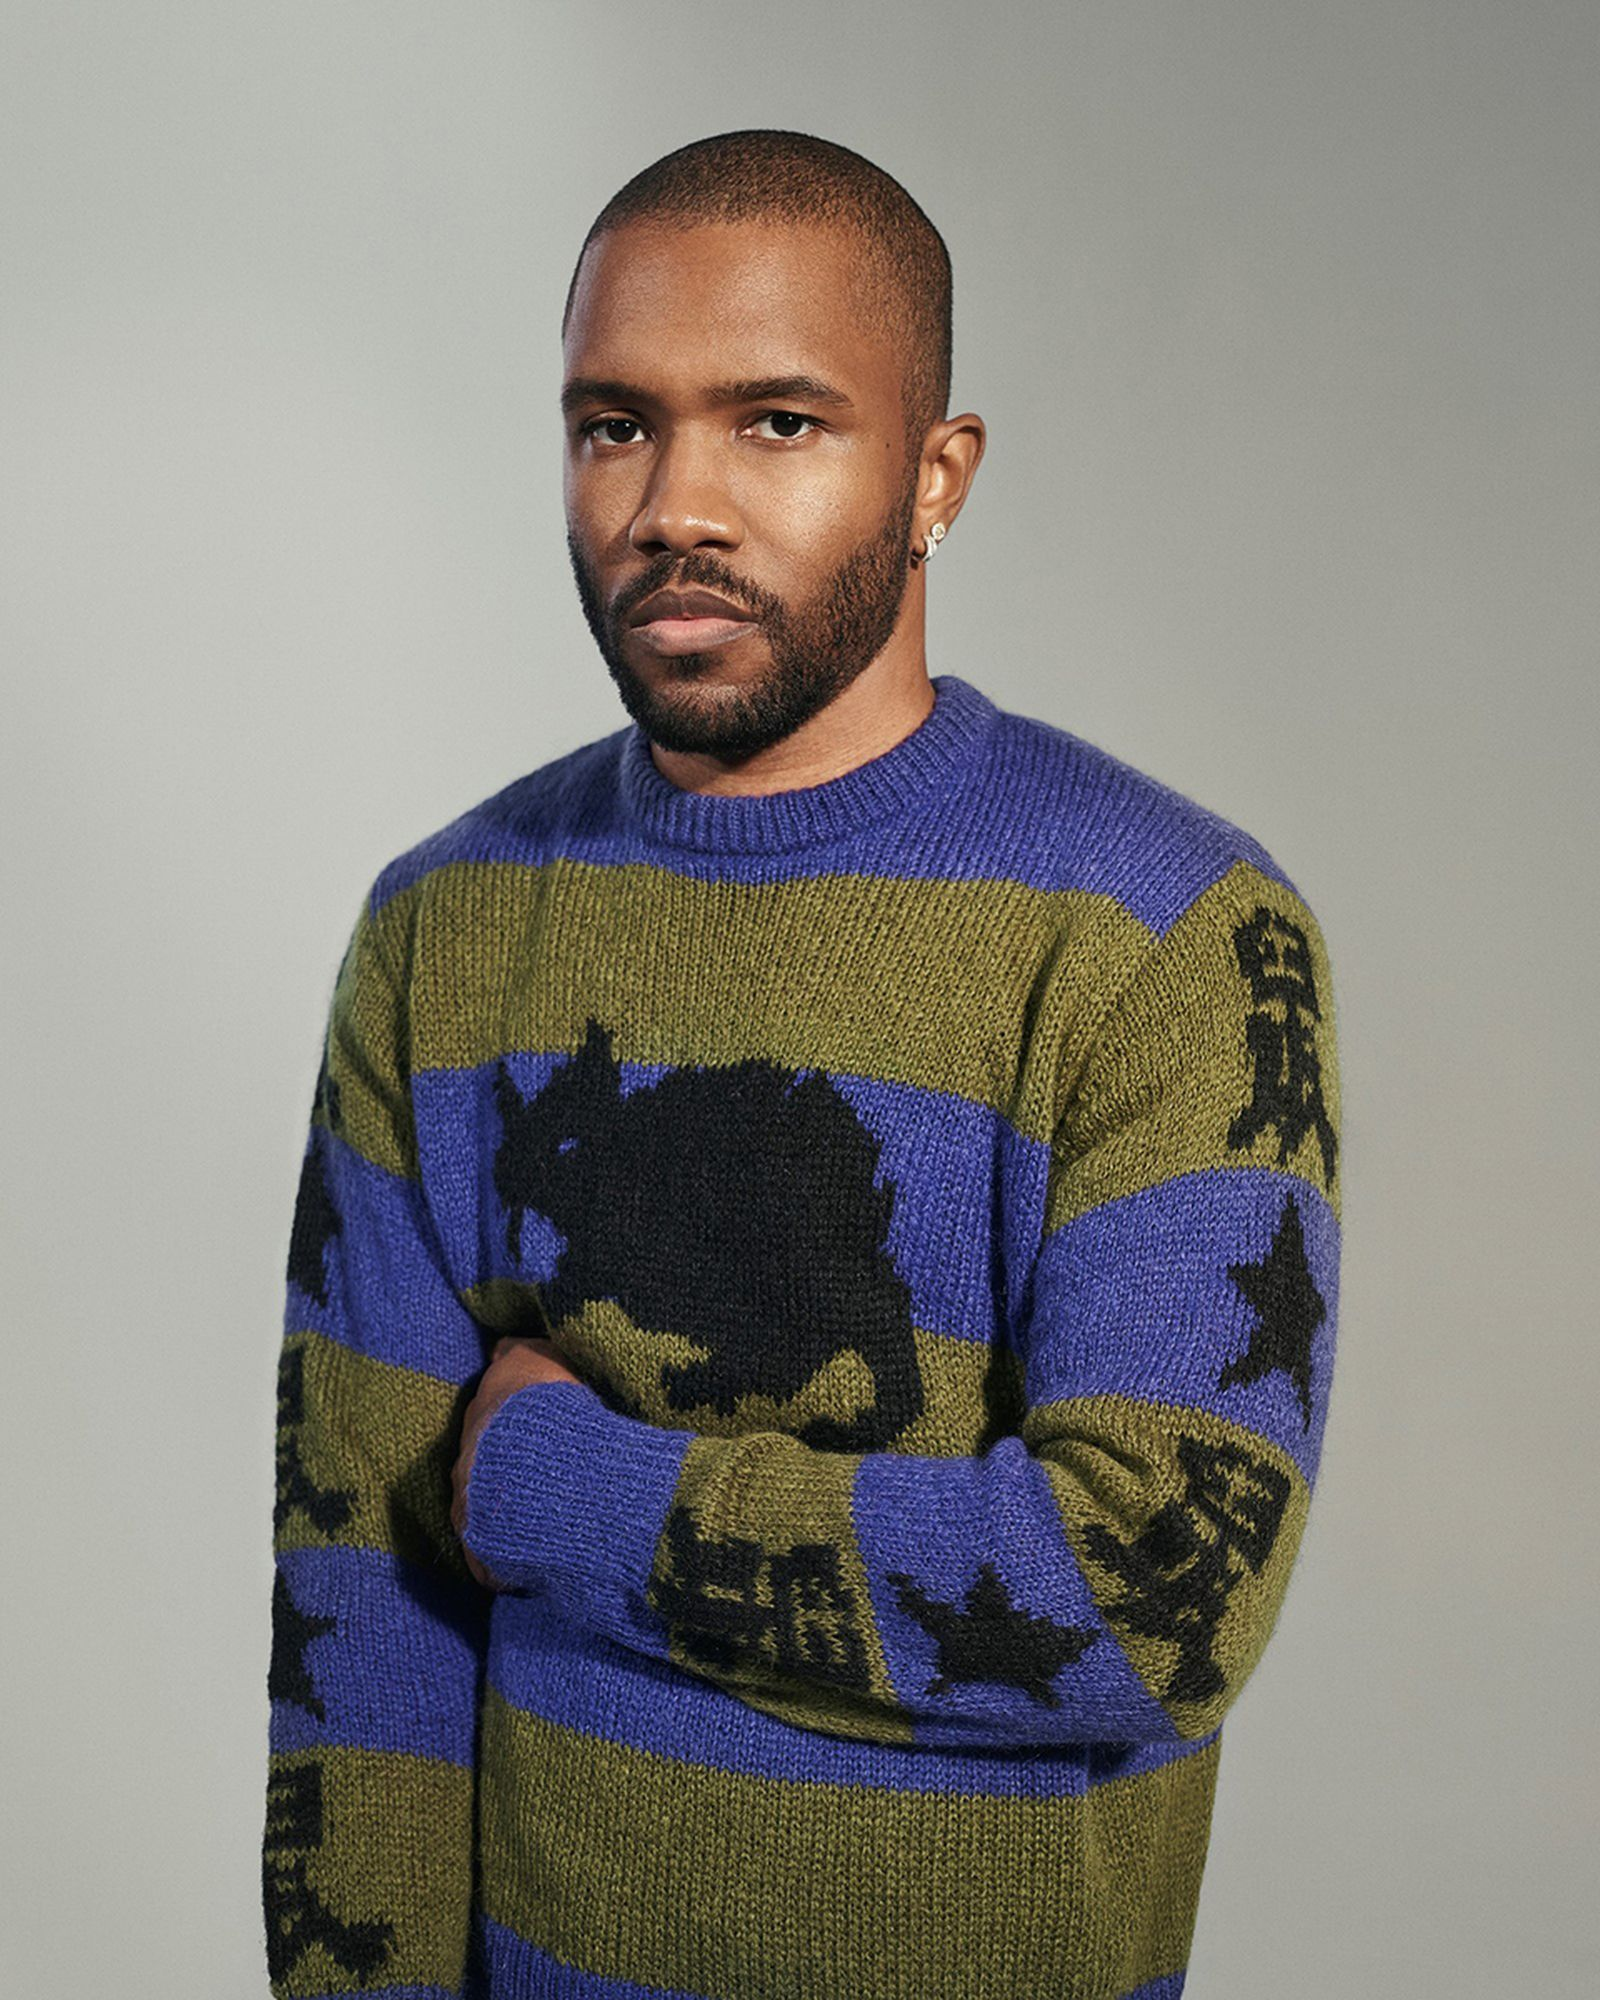 Frank Ocean Marc Jacobs x Stray Rats Lunar New Year Capsule